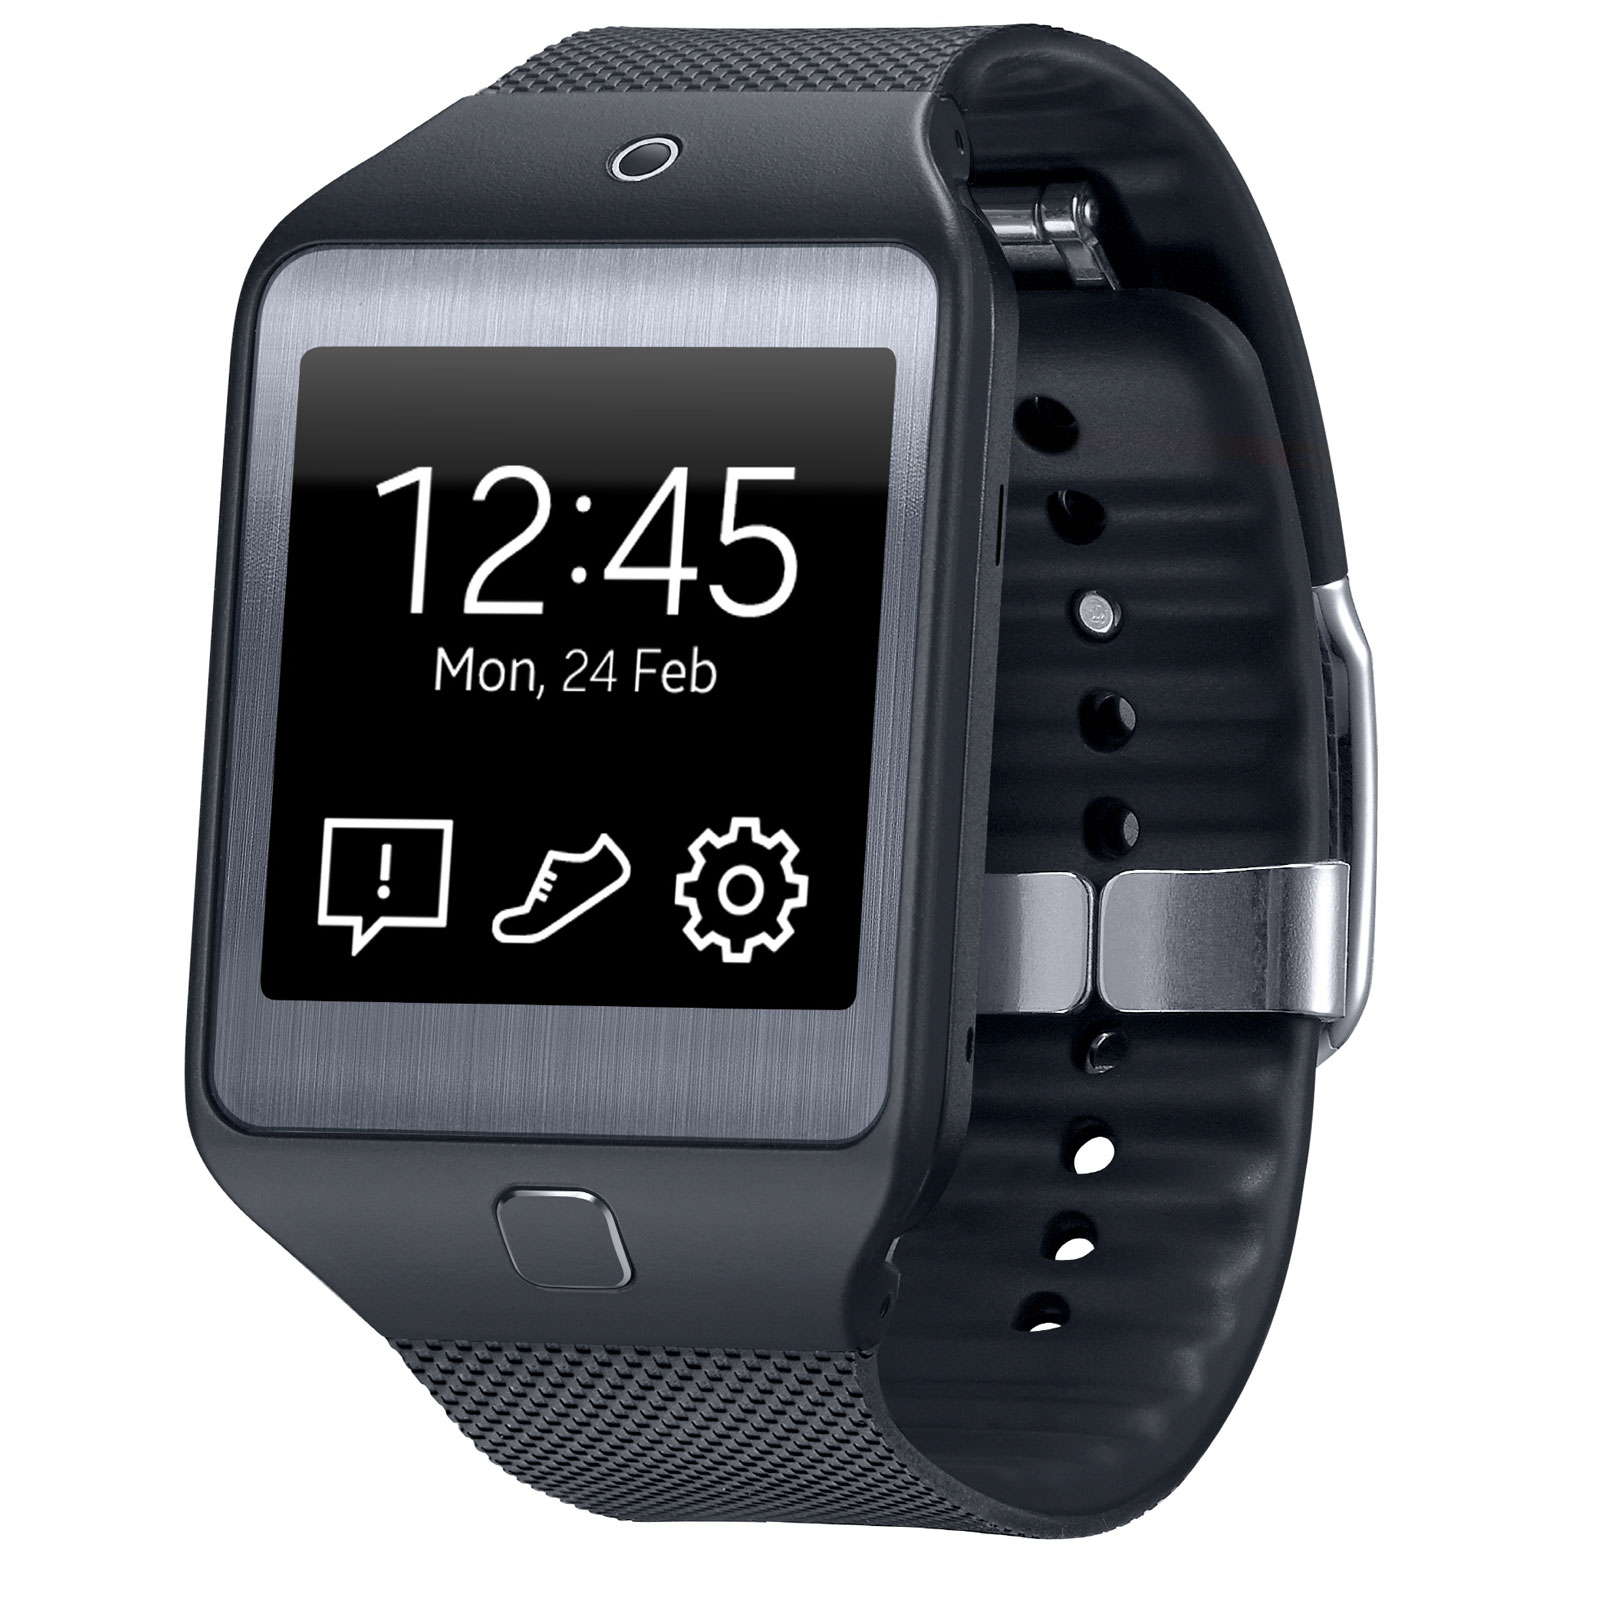 samsung galaxy gear 2 lite noir montre bracelets connect s samsung sur ldlc. Black Bedroom Furniture Sets. Home Design Ideas